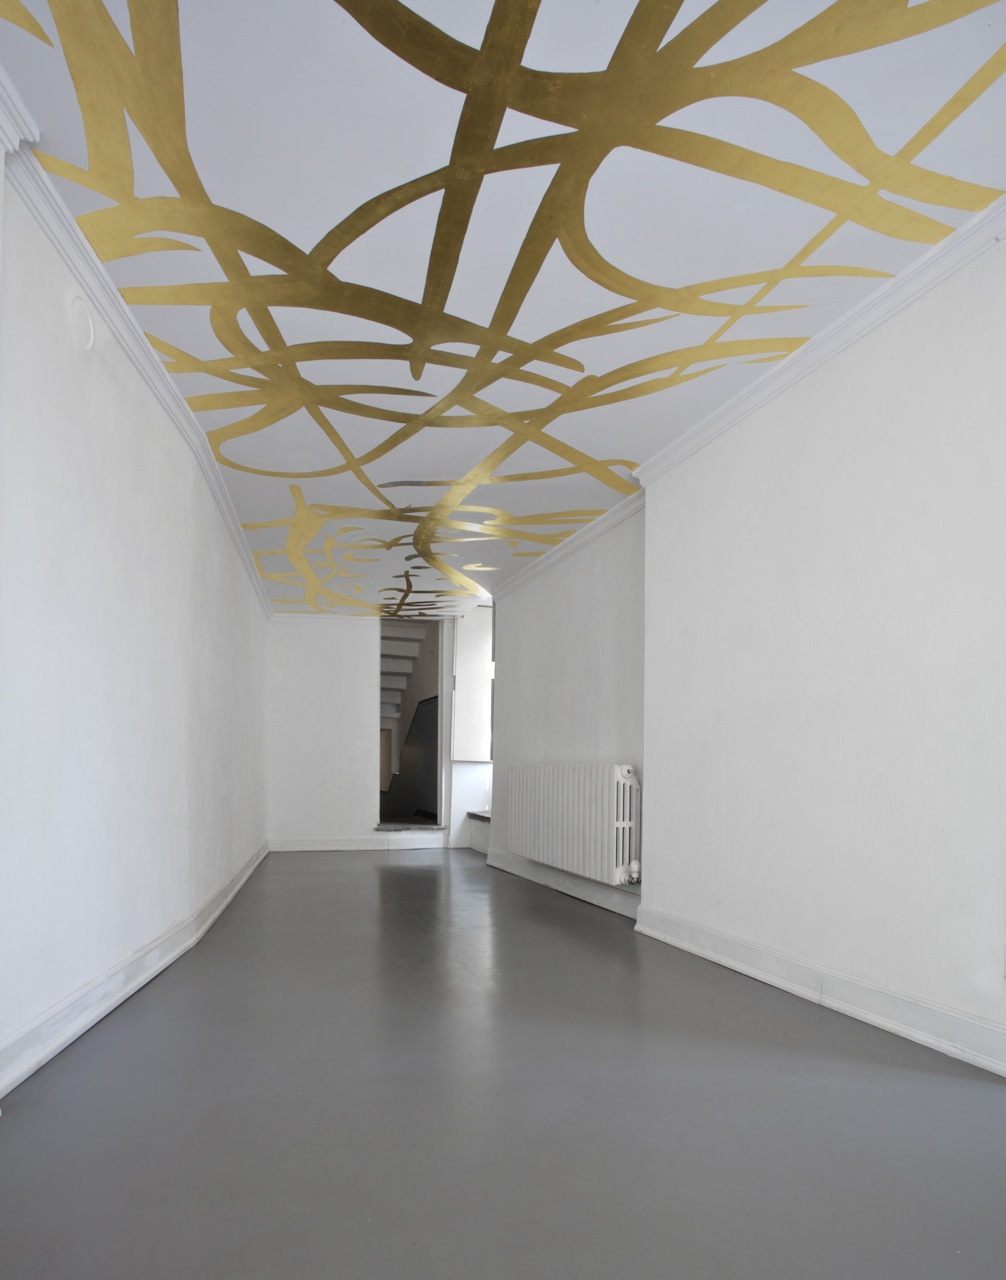 2009, gold leaf wall painting, site specific dimensions. Installation view, Solo show, Galleria Franco Noero, Torino, 2009